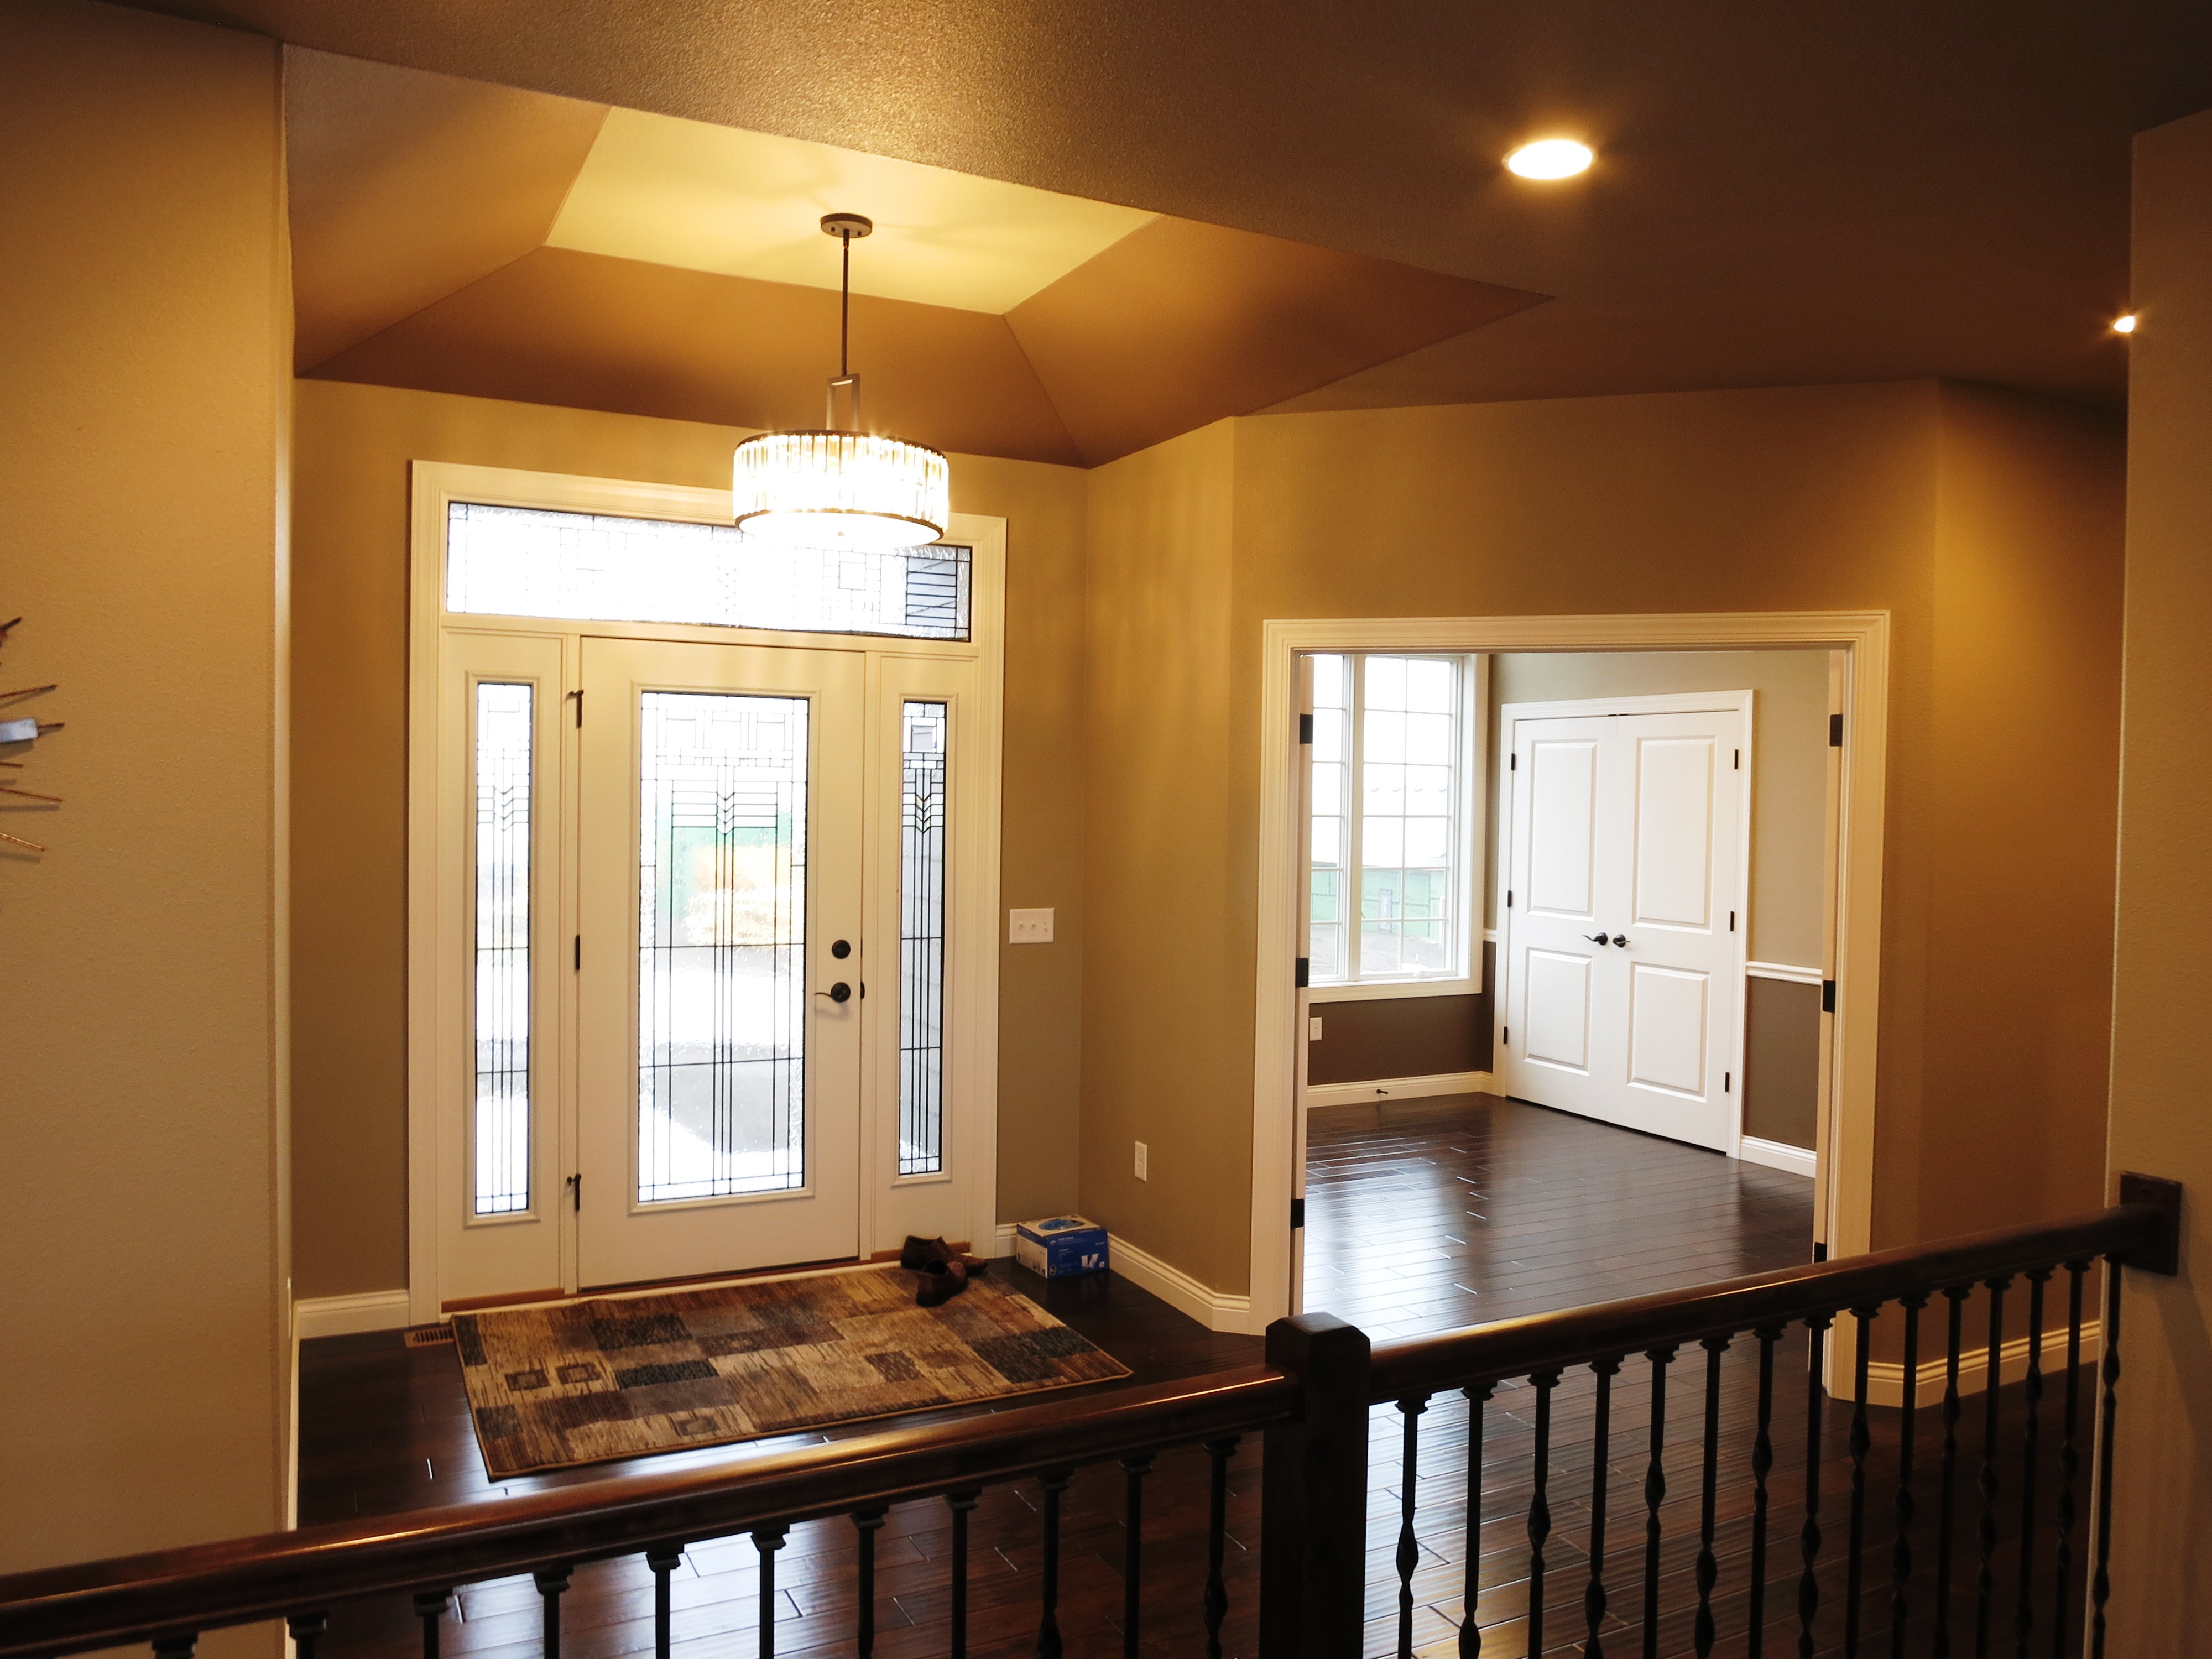 The following pictures are of a home with a similar floor plan.